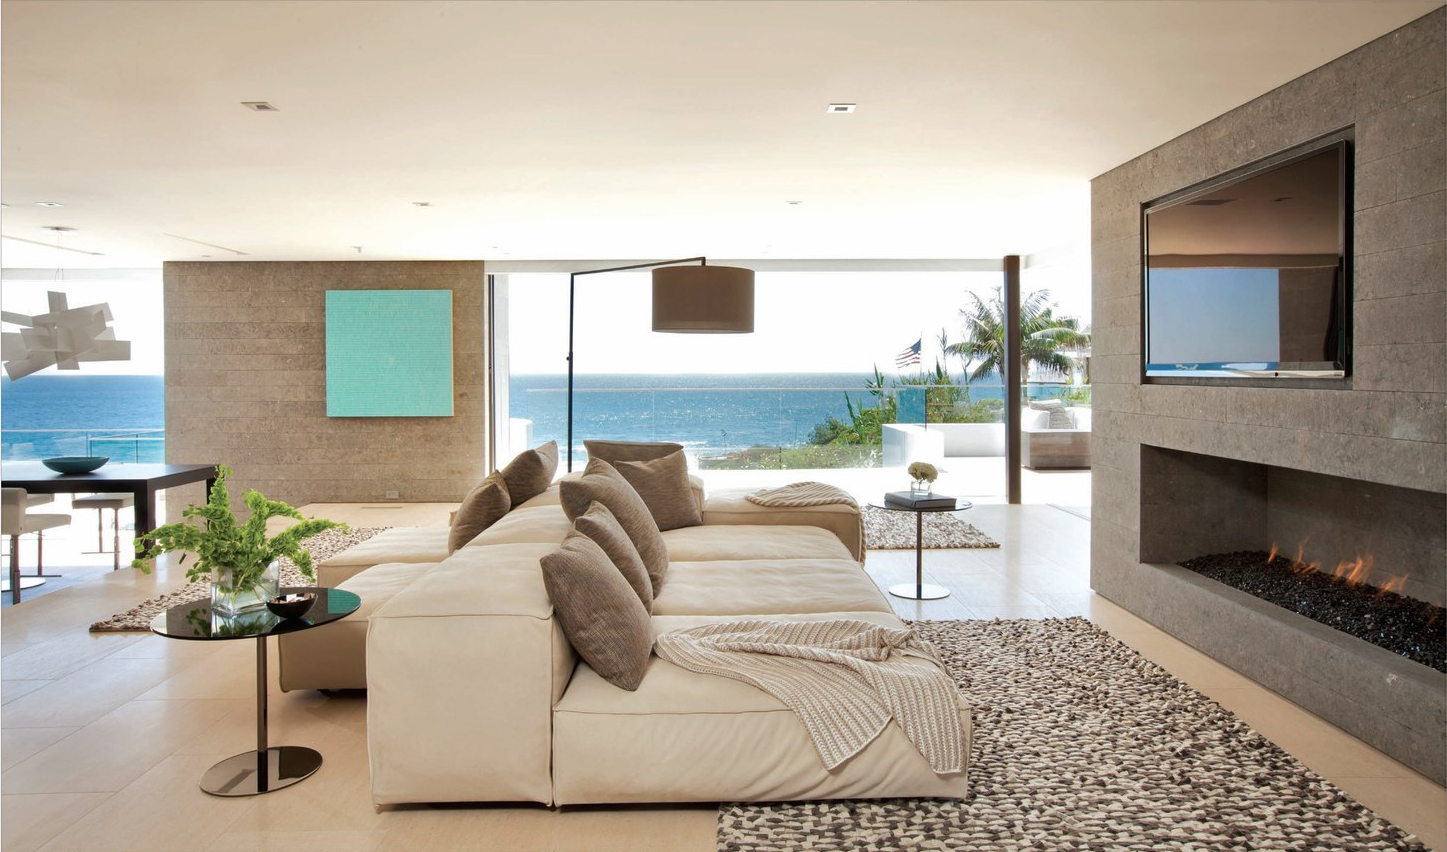 Beach Theme Minimalist Living Room Decorations (Image 2 of 10)